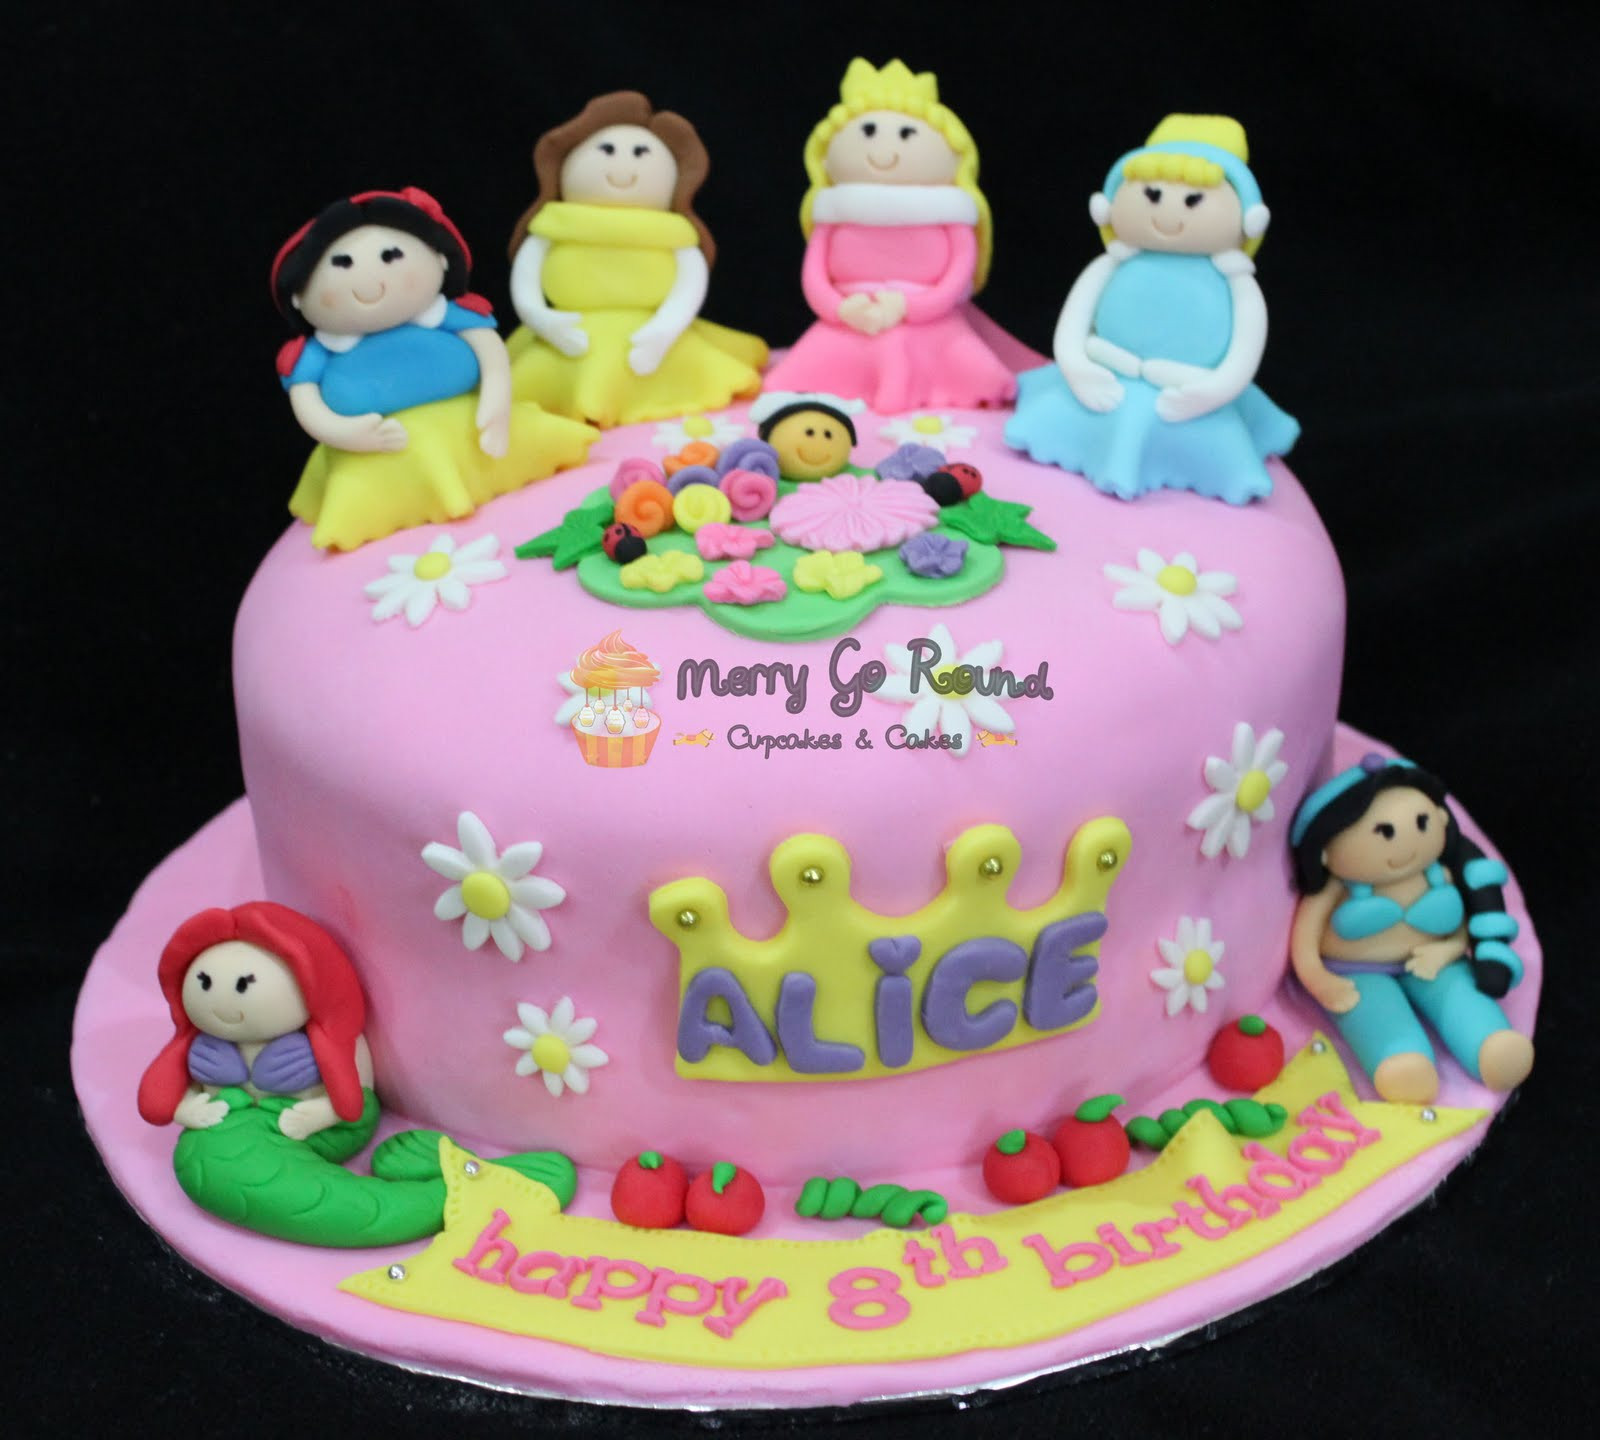 Merry Go Round - Cupcakes & Cakes: Disney Princess birthday Cake